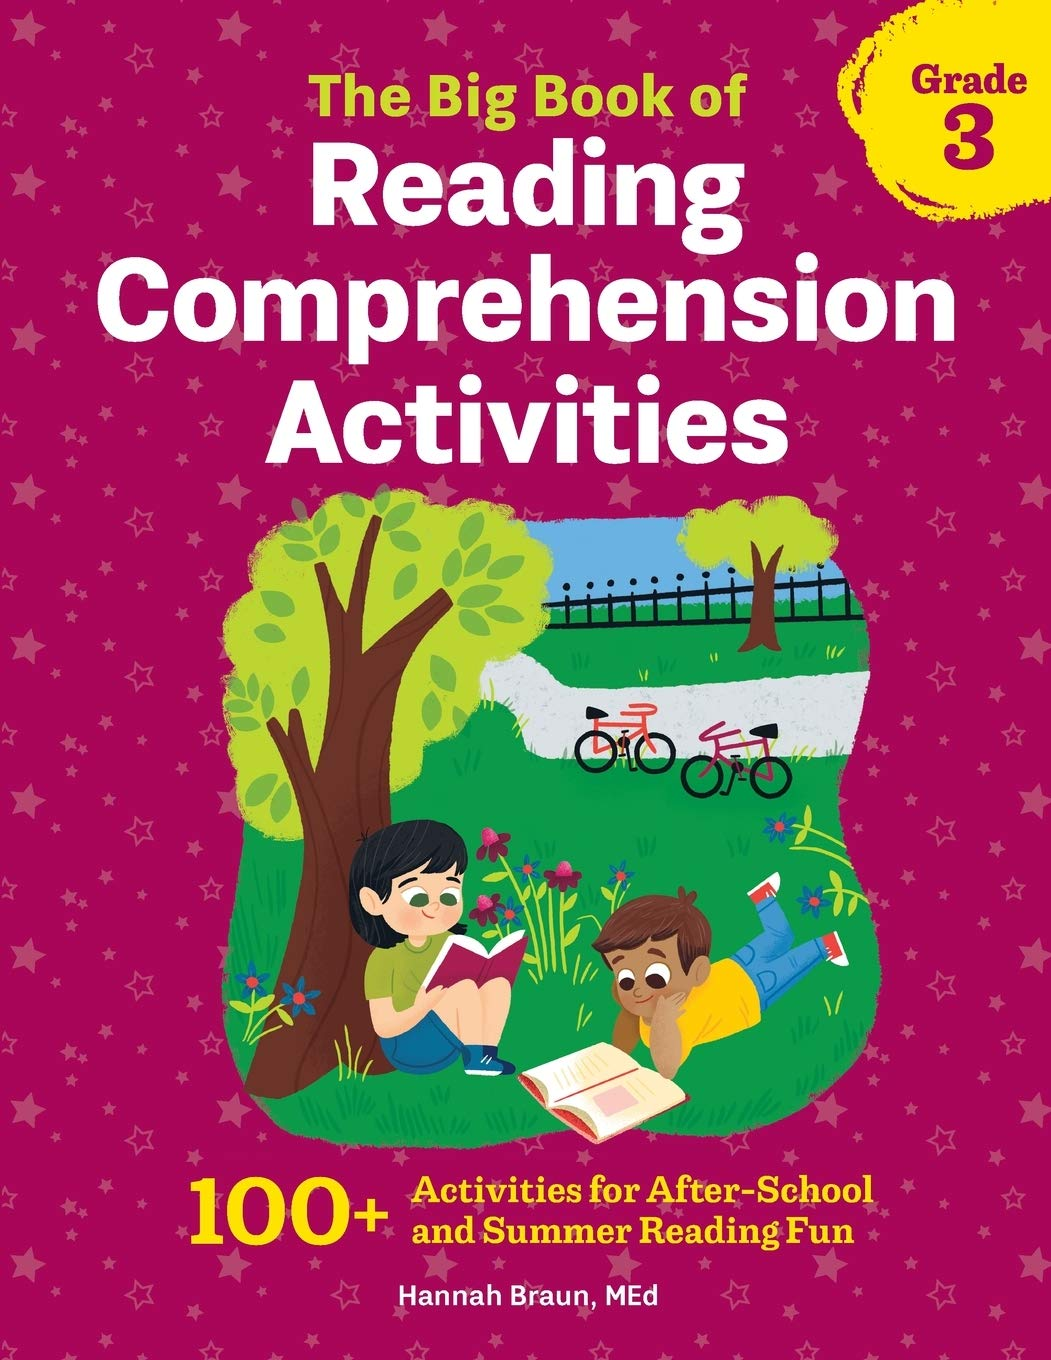 - The Big Book Of Reading Comprehension Activities, Grade 3: 100+